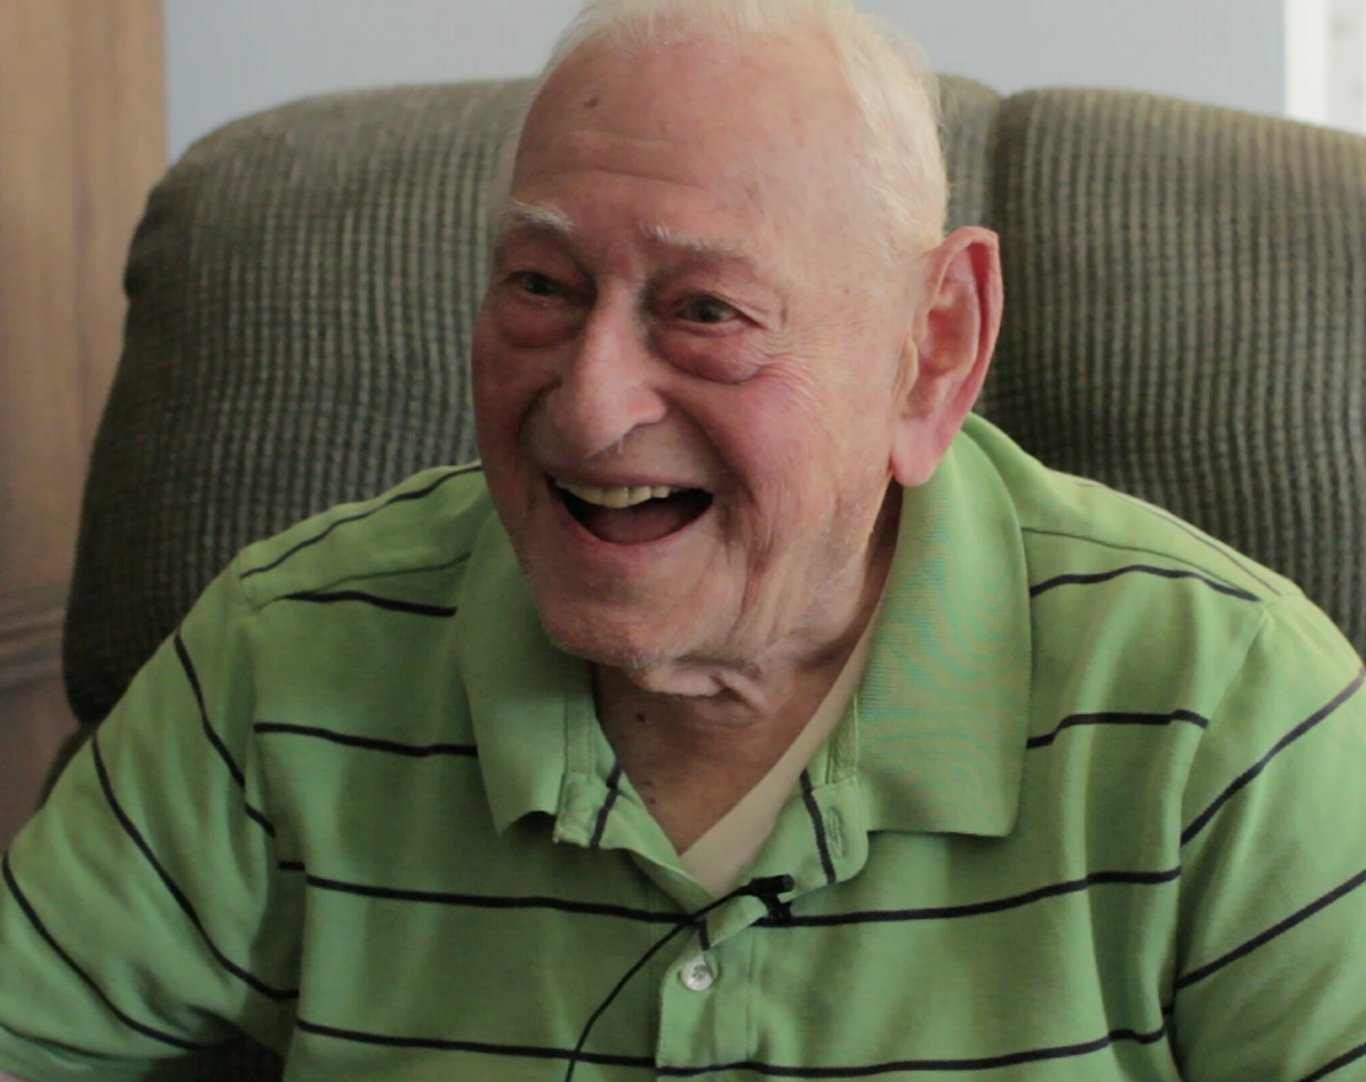 grandparent videos legacy video for family documentary quality portraits that move